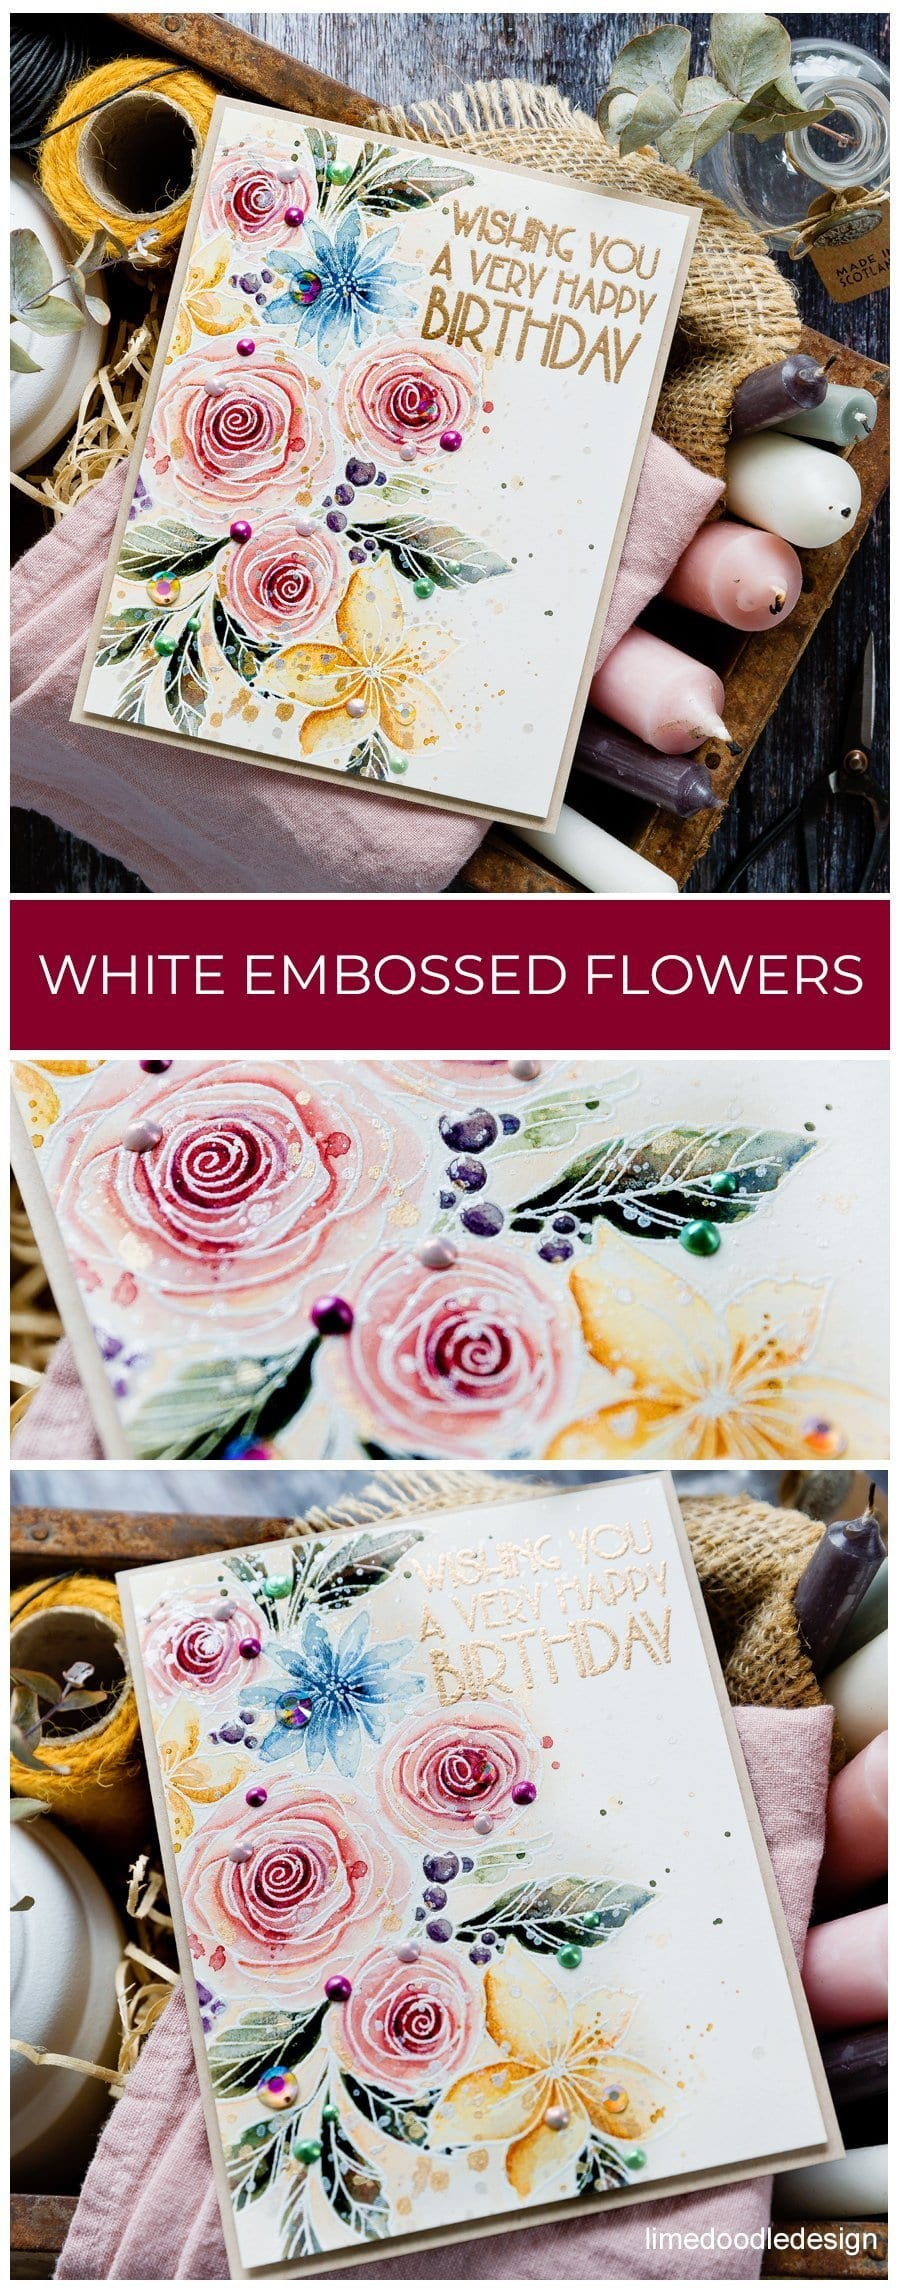 Easy watercolouring by white heat embossing the image first. Handmade birthday card by Debby Hughes. Find out more here:https://limedoodledesign.com/2019/05/white-heat-embossed-florals/